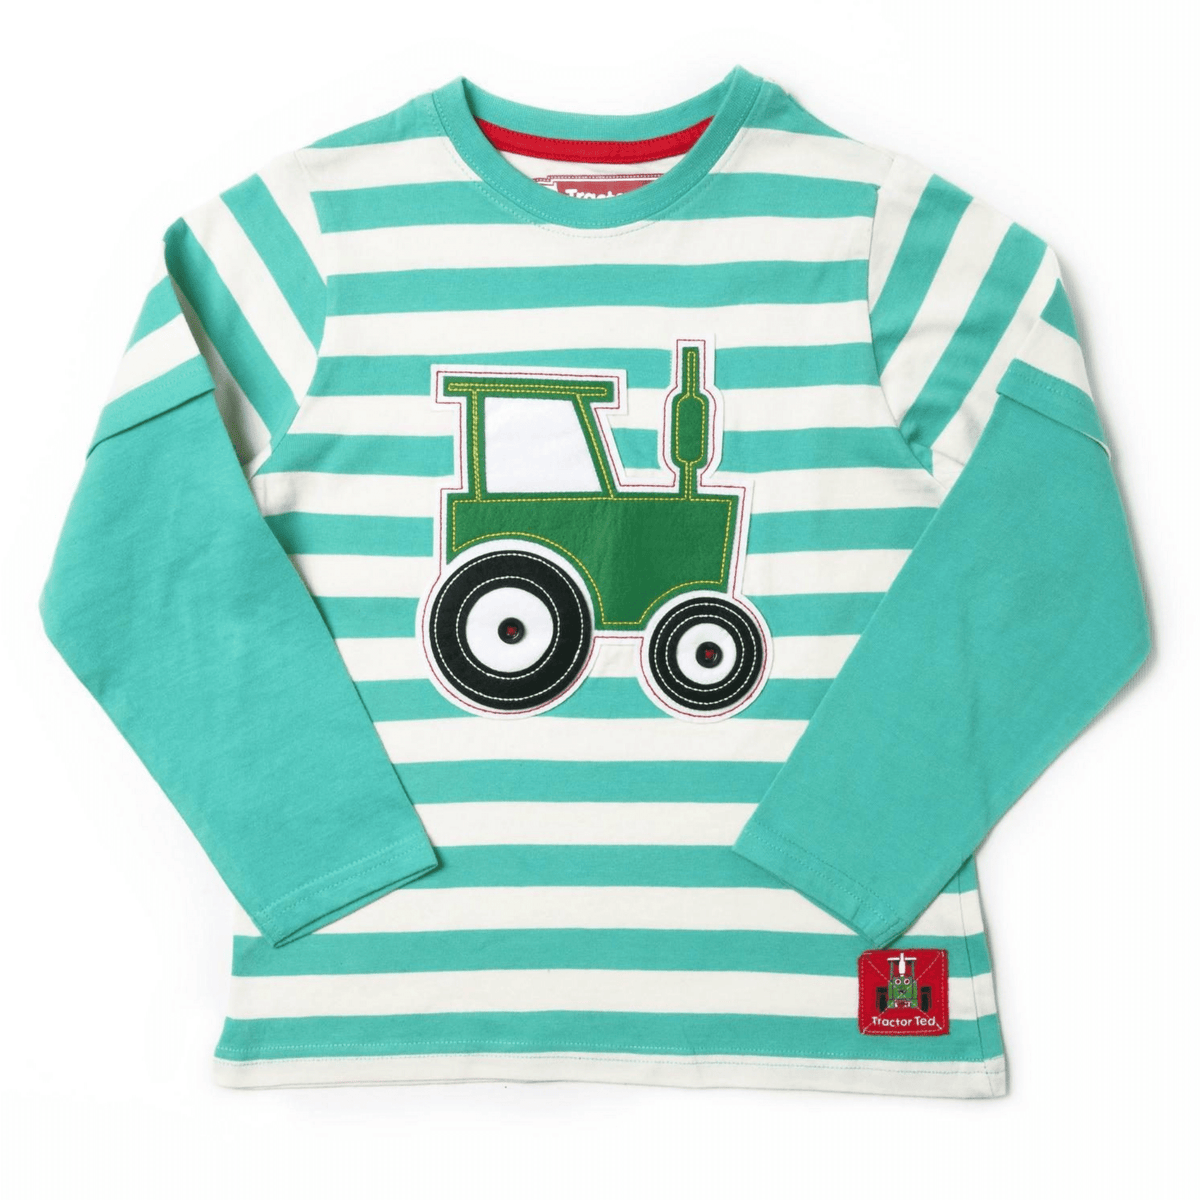 Tractor Ted Stripey Long Sleeve Teal T-shirt